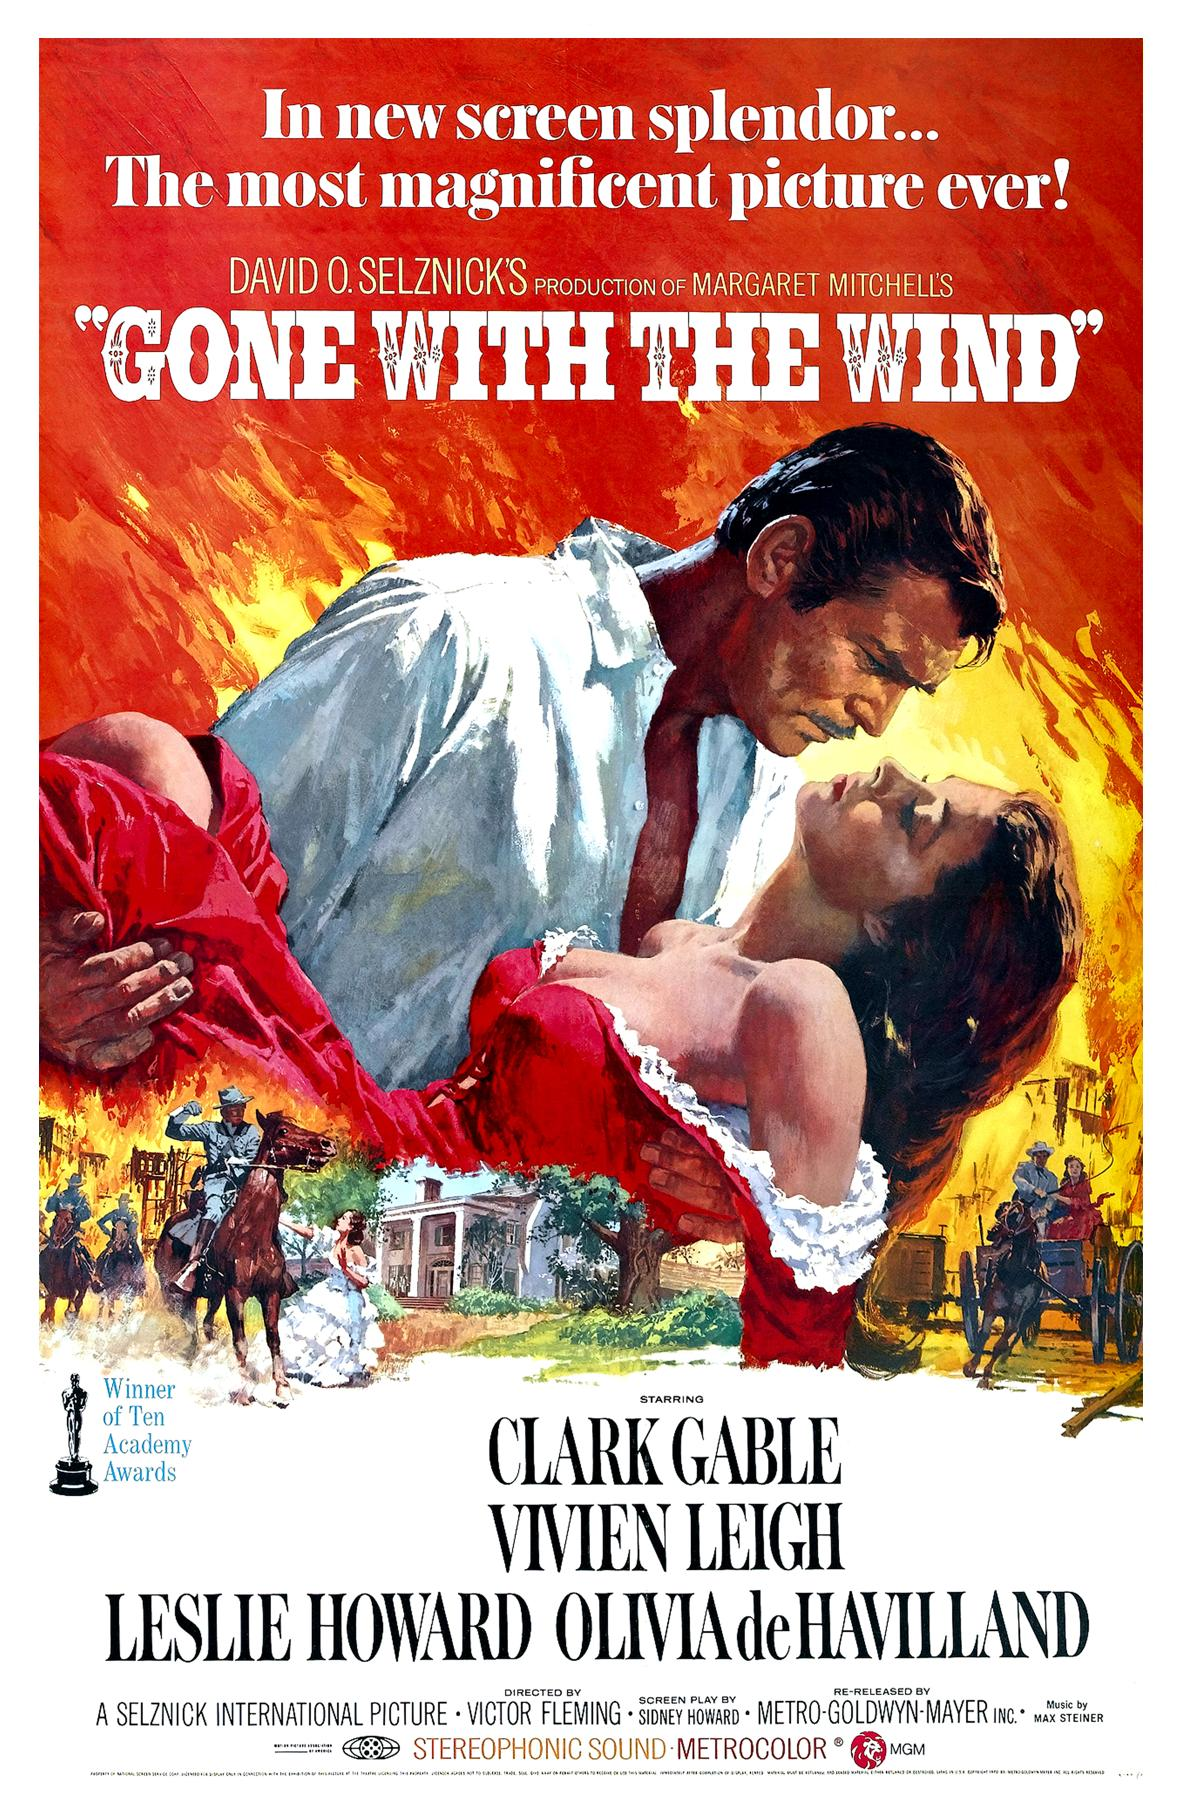 Yes, GONE WITH THE WIND Should be Shelved